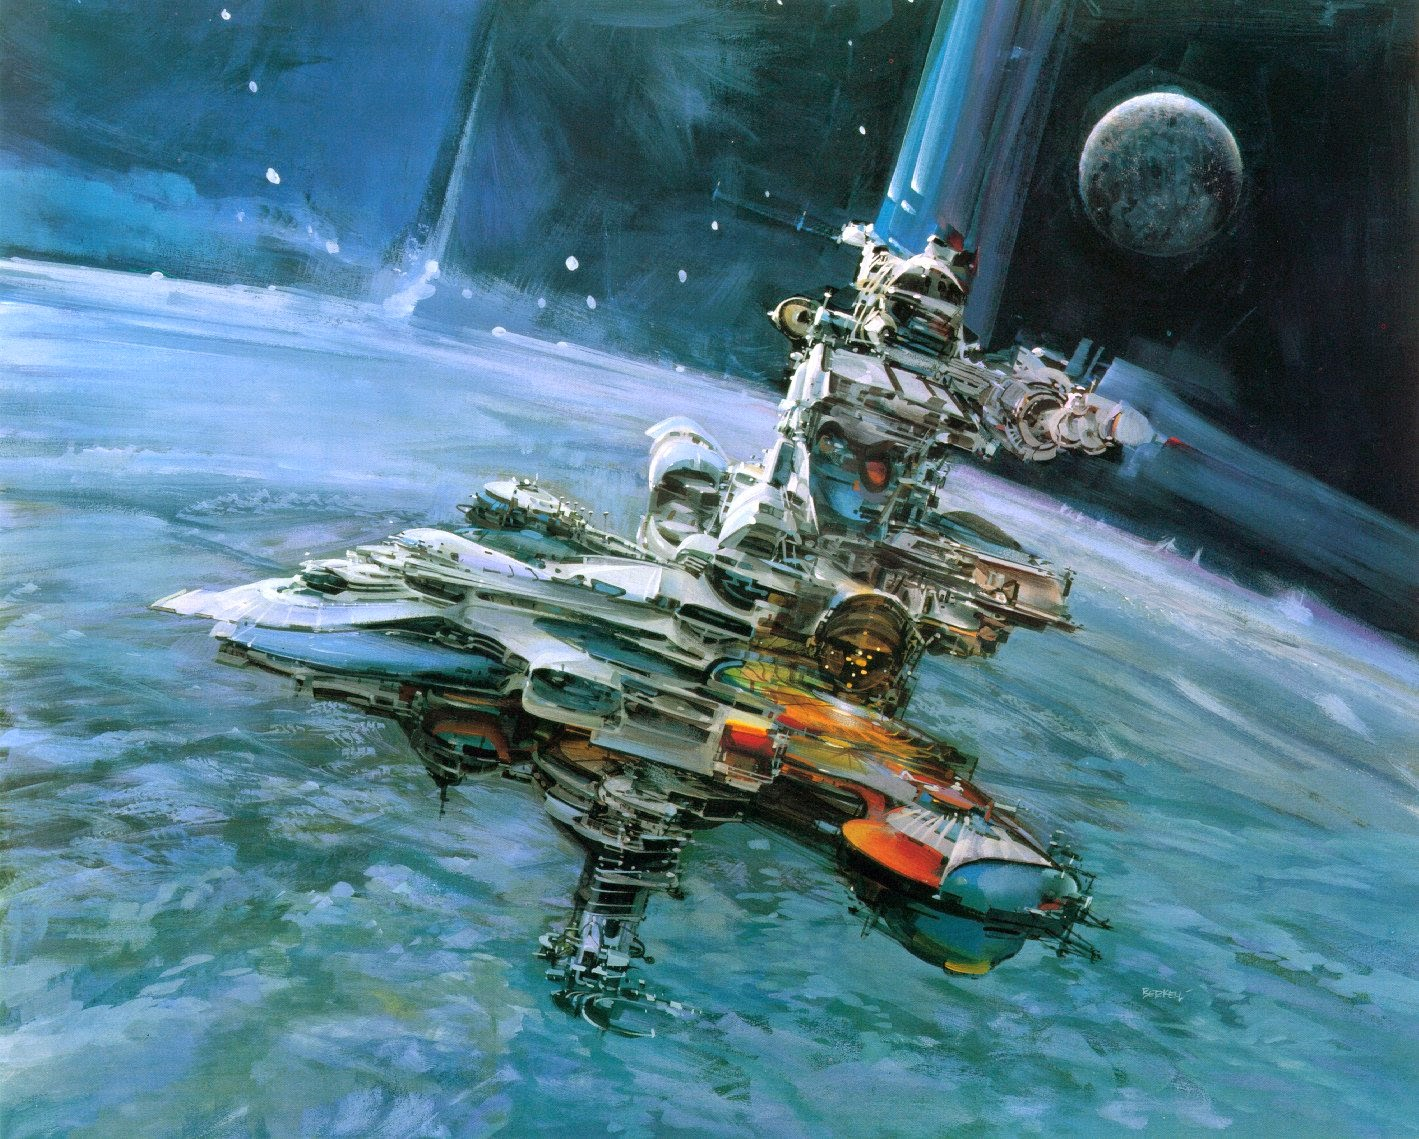 John Berkey naves espaciales